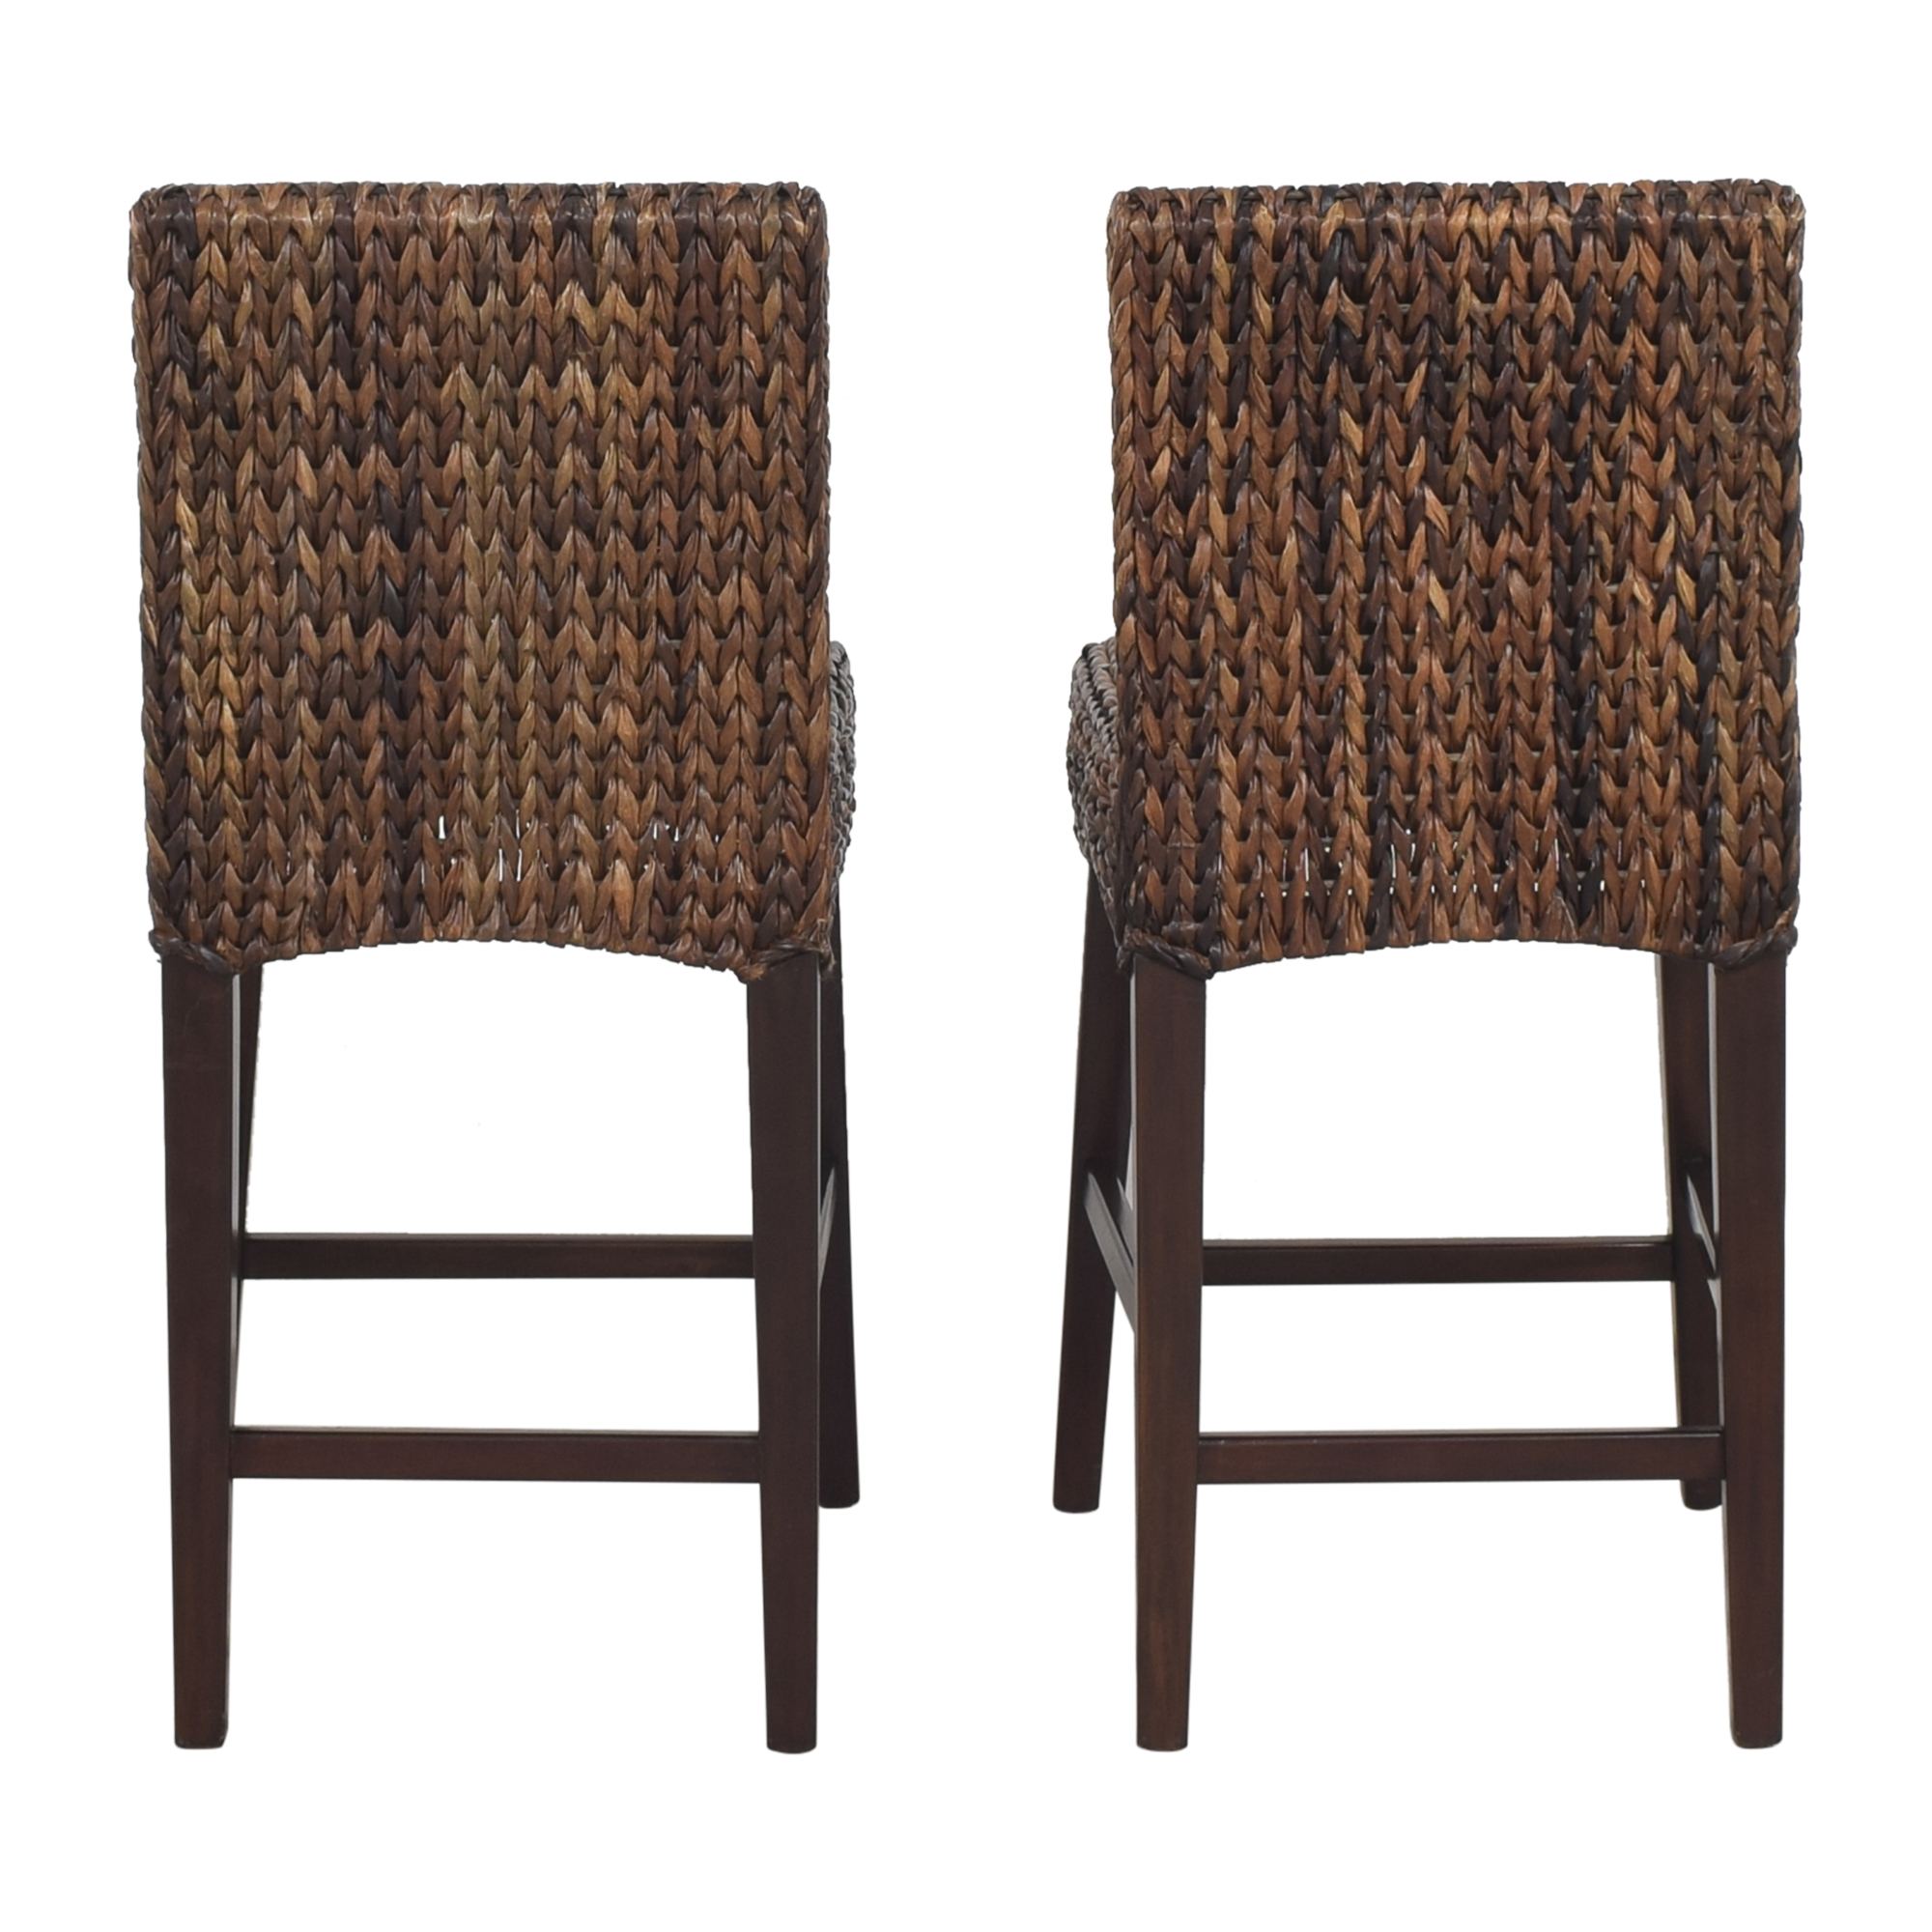 Pottery Barn Seagrass Counter Stools sale